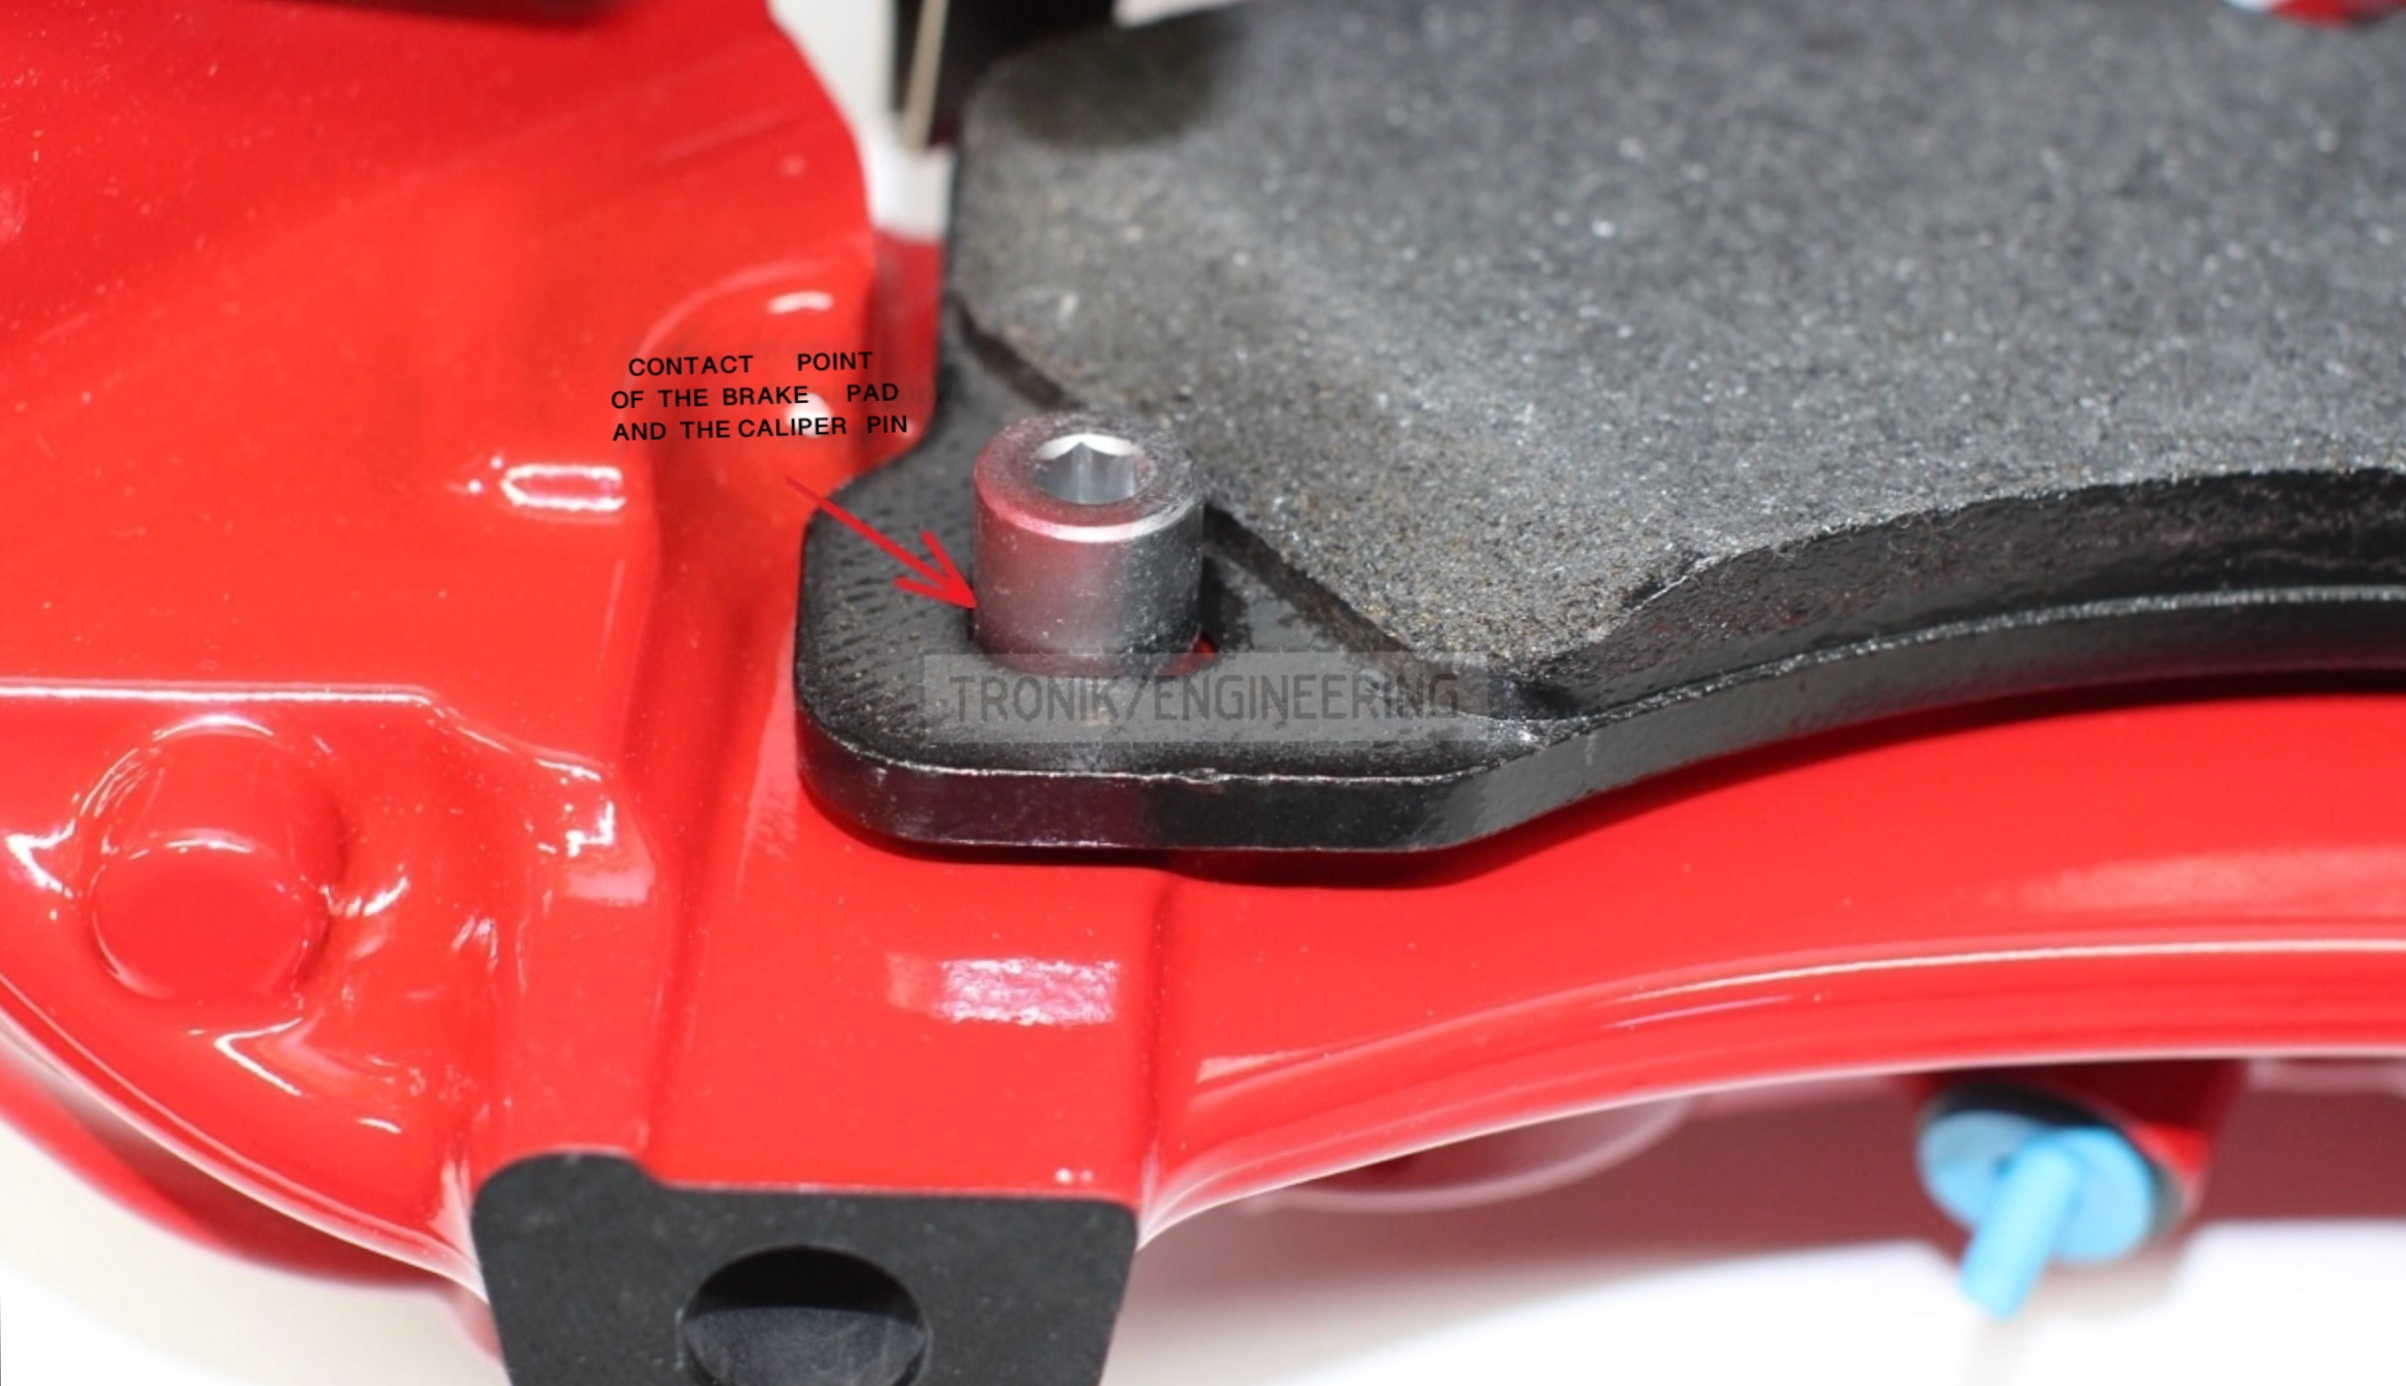 contact point of brake pad and caliper pin